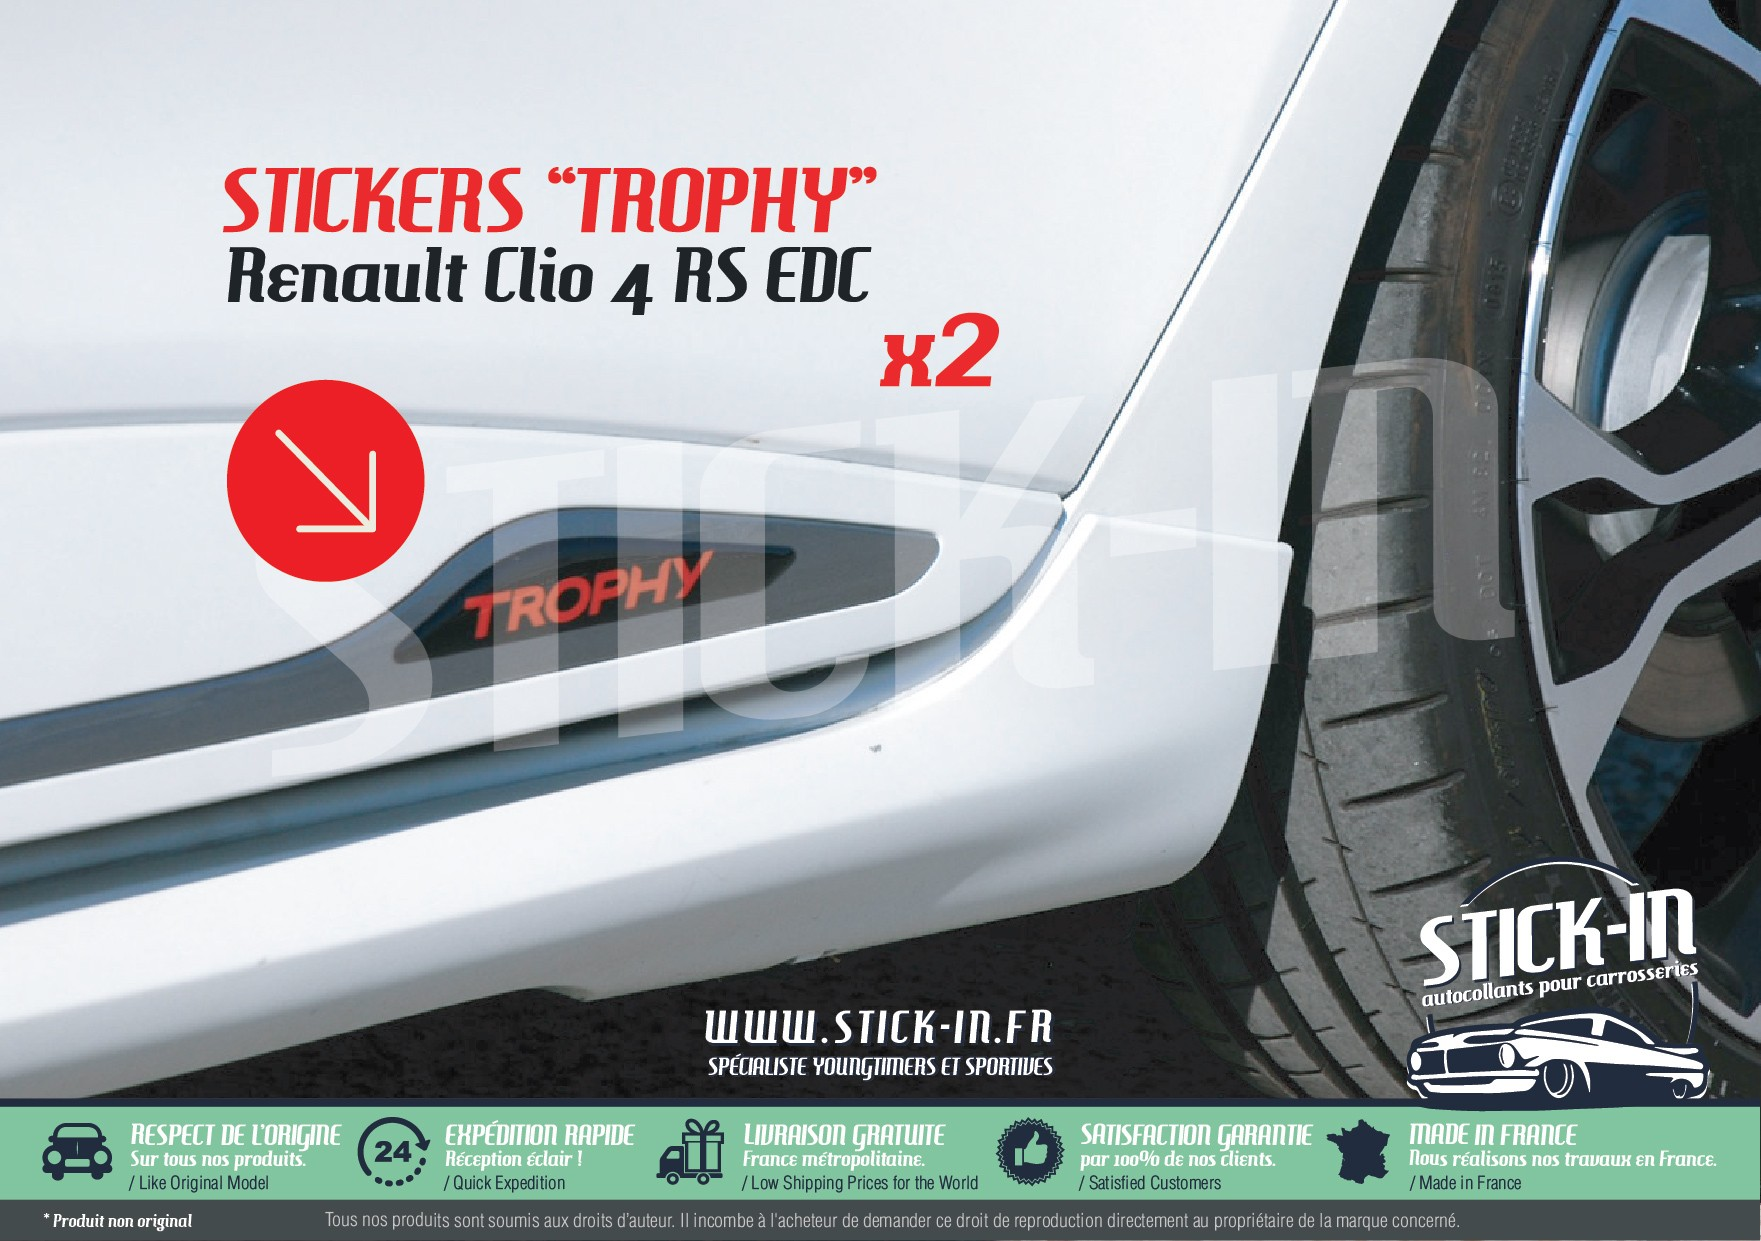 Renault Clio 4 Rs Edc Trophy 220 Stickers Doors Decals Rear Stick In Www Stick In Fr